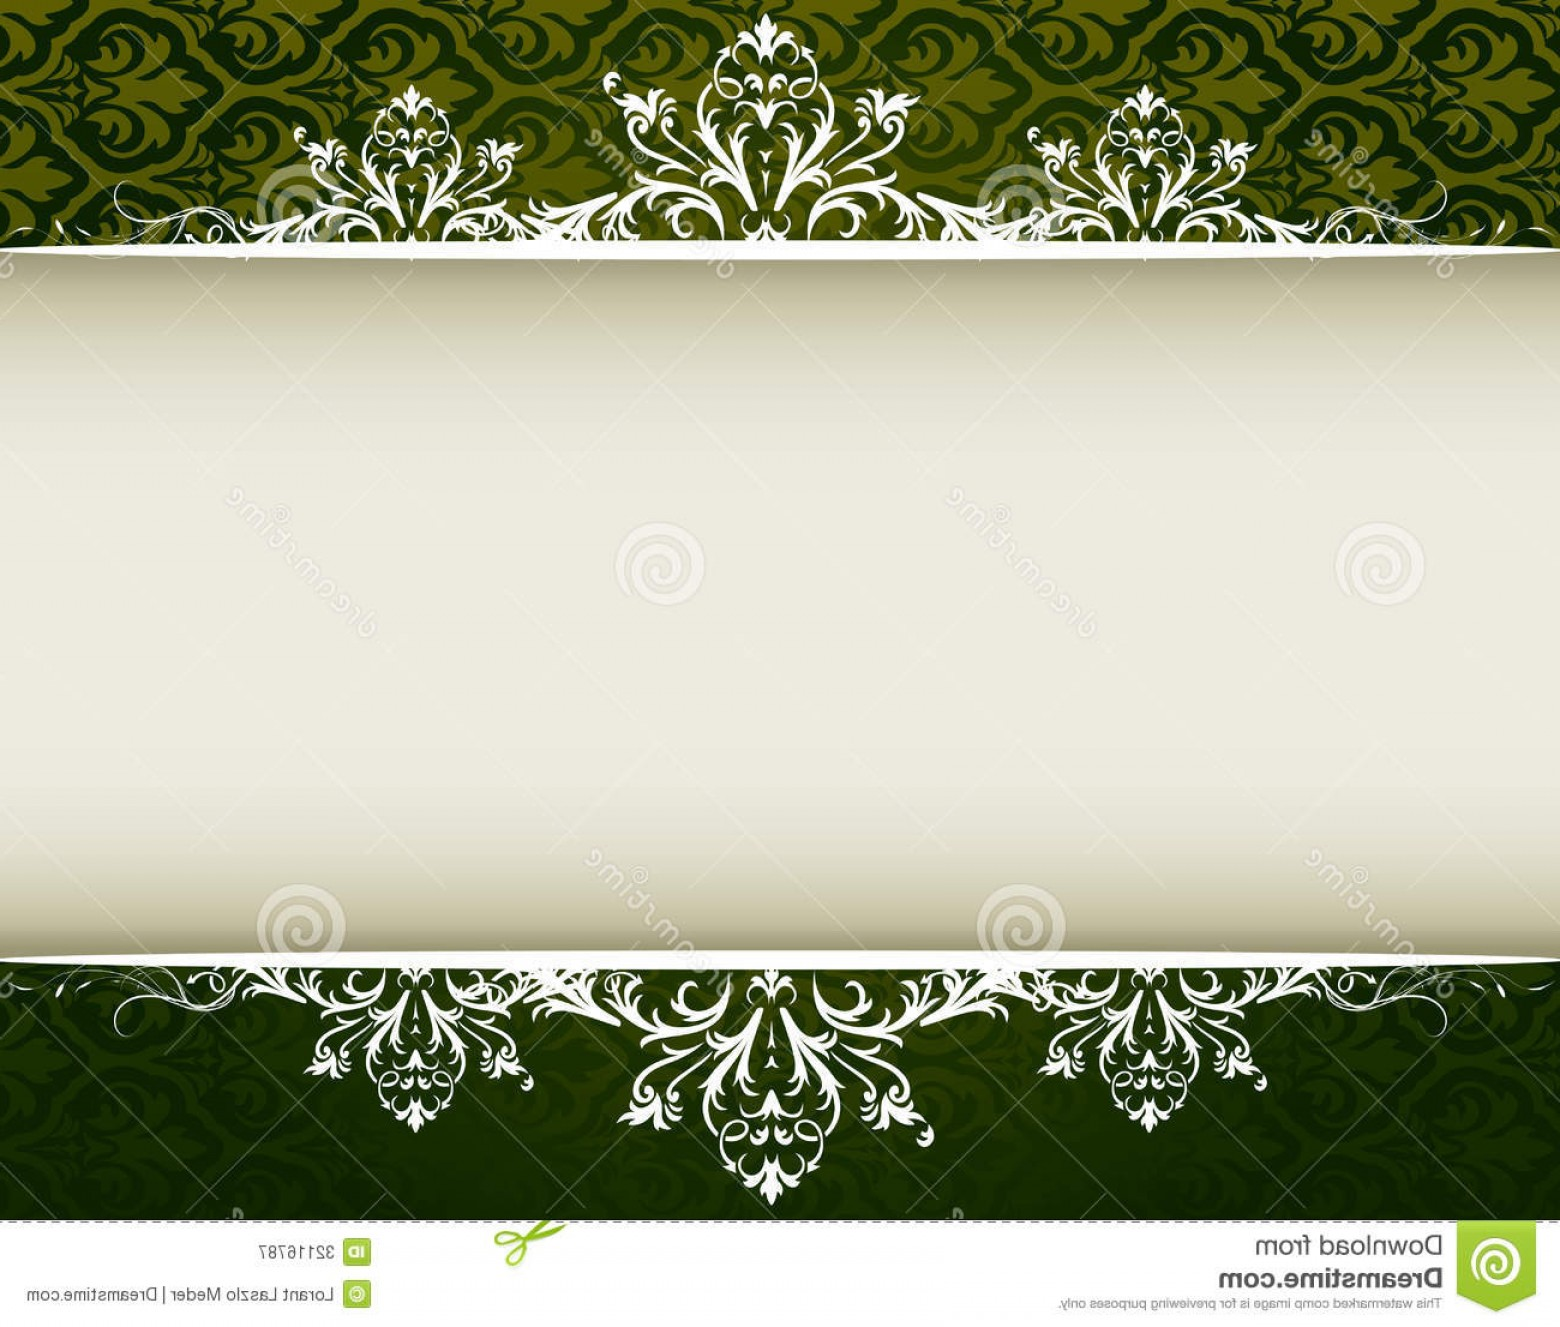 Vector Royal Vintage: Royalty Free Stock Photography Royal Vintage Cover Editable Vector Format Image